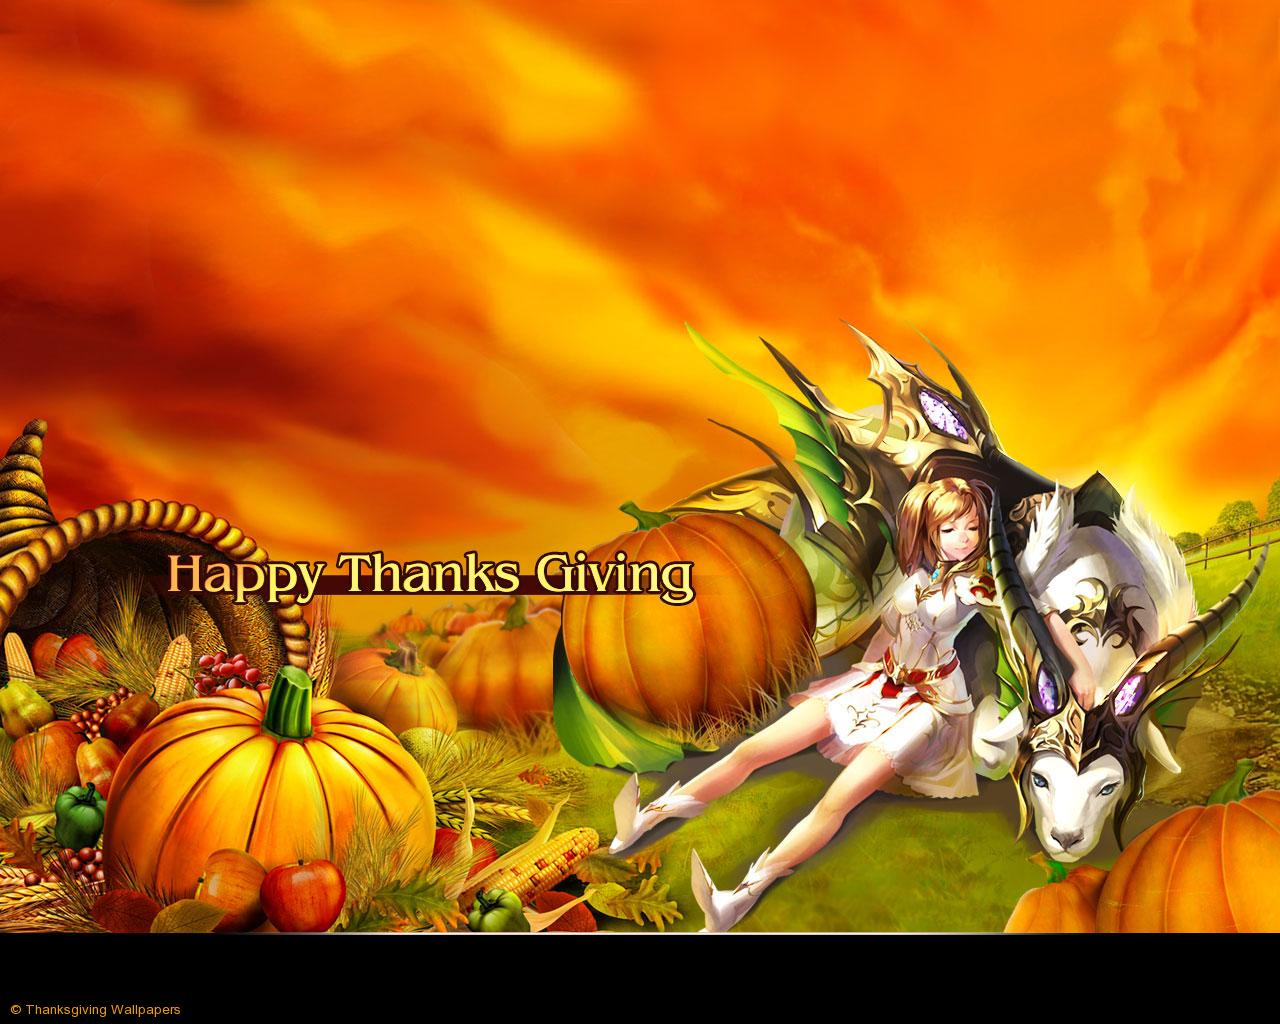 kootationcomimages of funny thanksgiving wallpaper techjosthtml 1280x1024